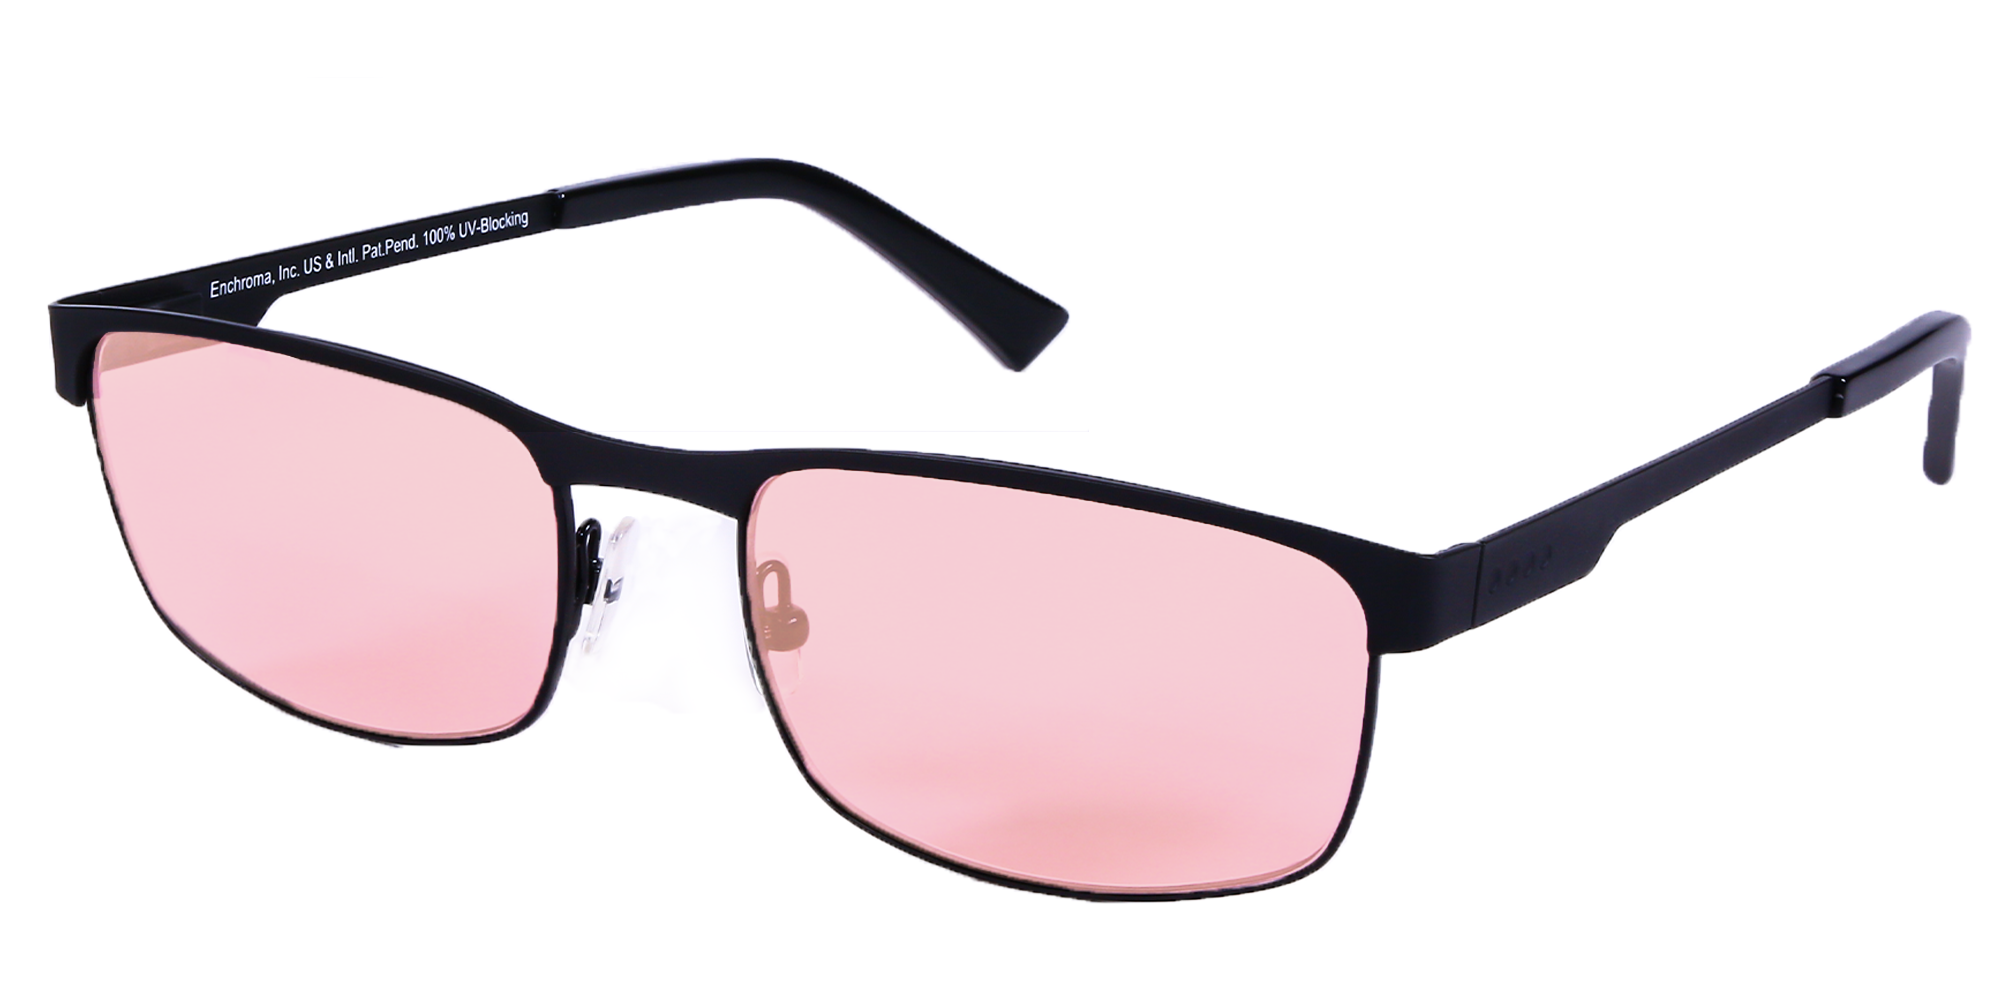 7468877bf457 Features optical quality spring hinges and silicone nose pads. Case  included. EnChroma® Bancroft. Color blindness glasses. Frame size: Medium  54-17-140.